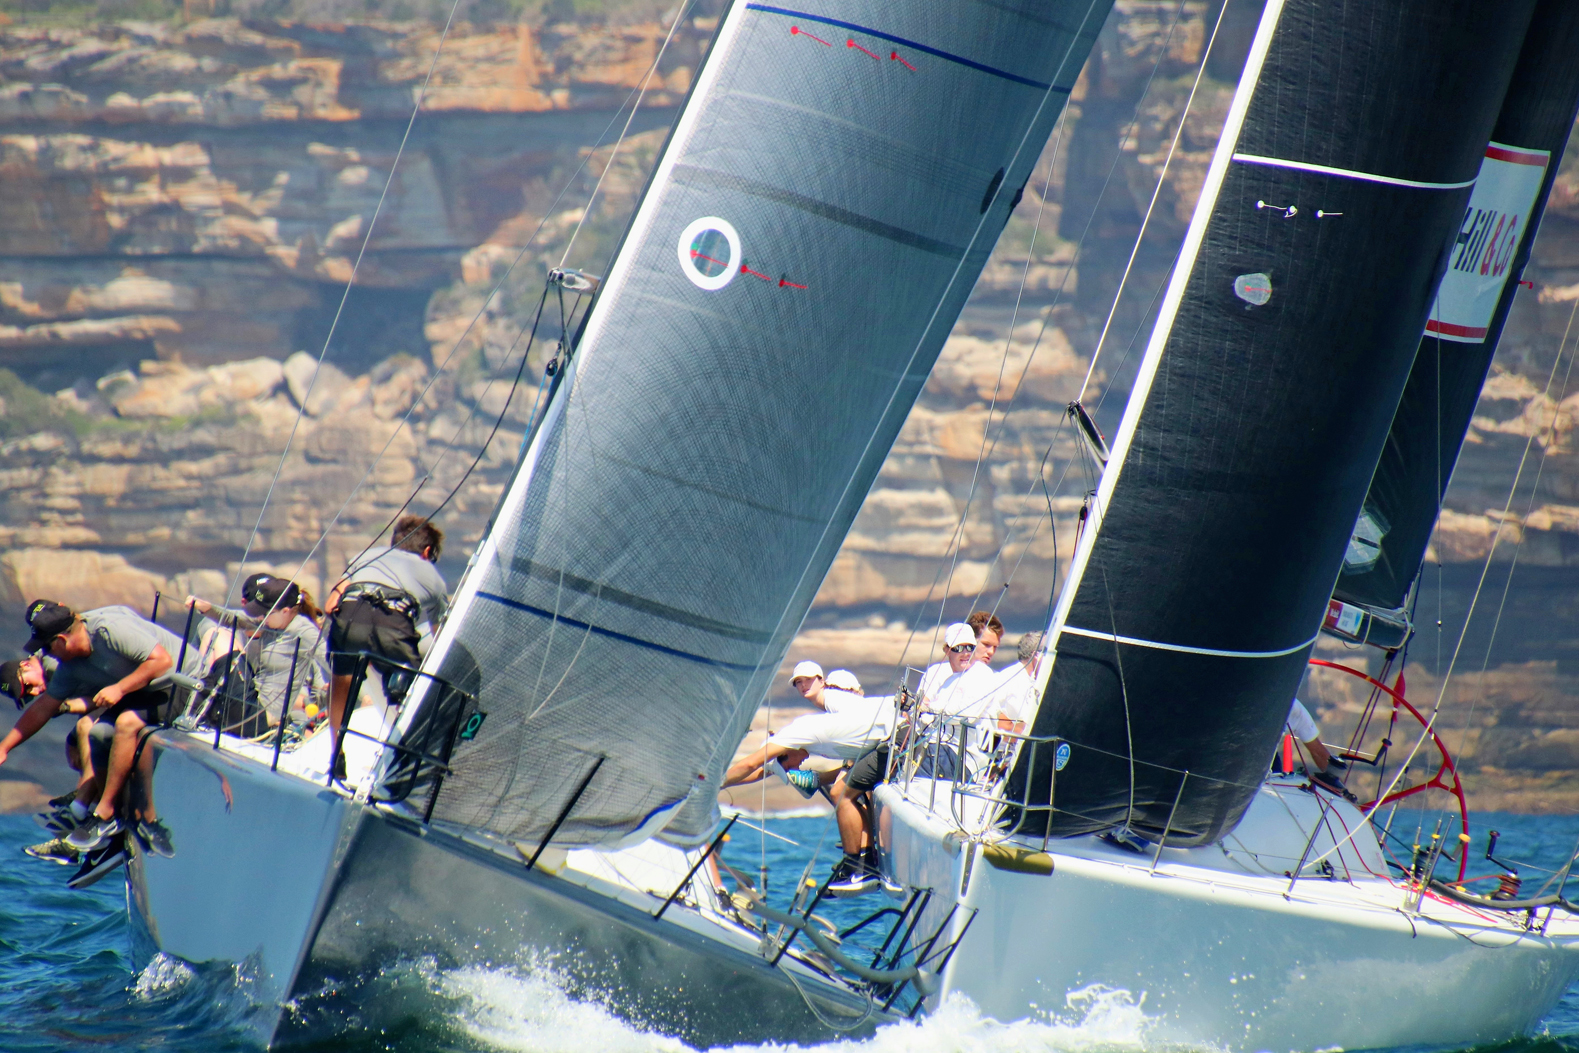 HillPDA Racing and Forty against Sydney sandstone cliffs. Photo credit Jen Hughes.